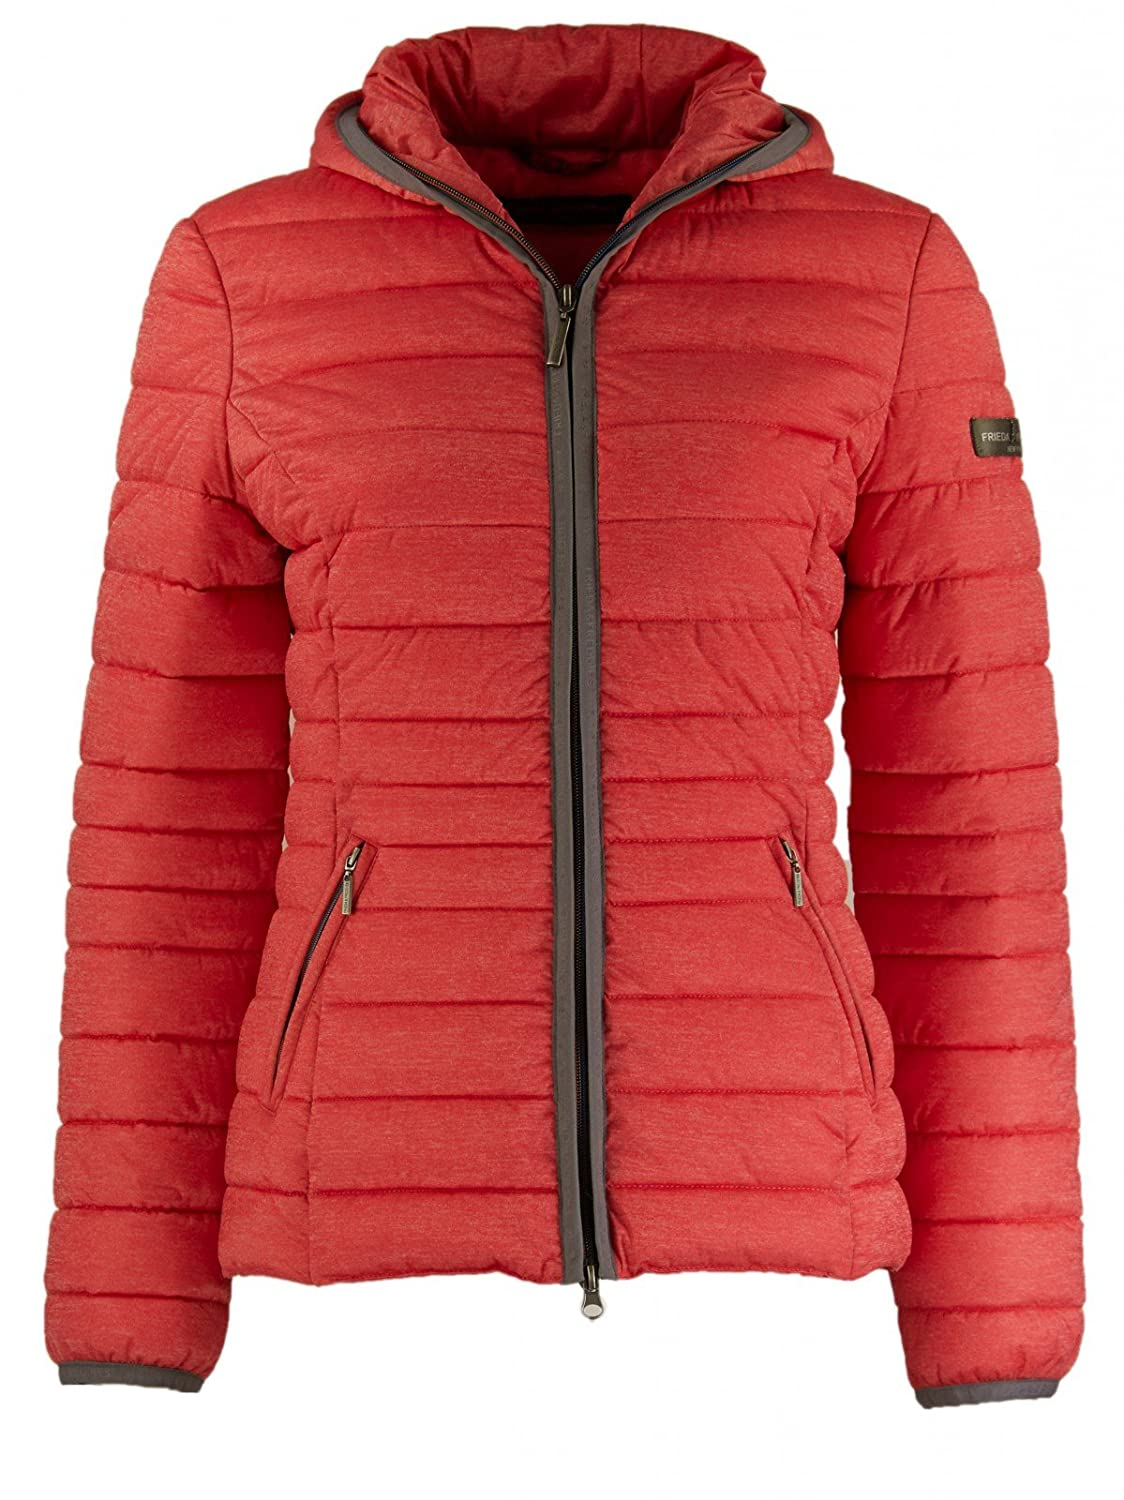 Frieda & Freddies Damen Steppjacke mit Kapuze in Risky Red